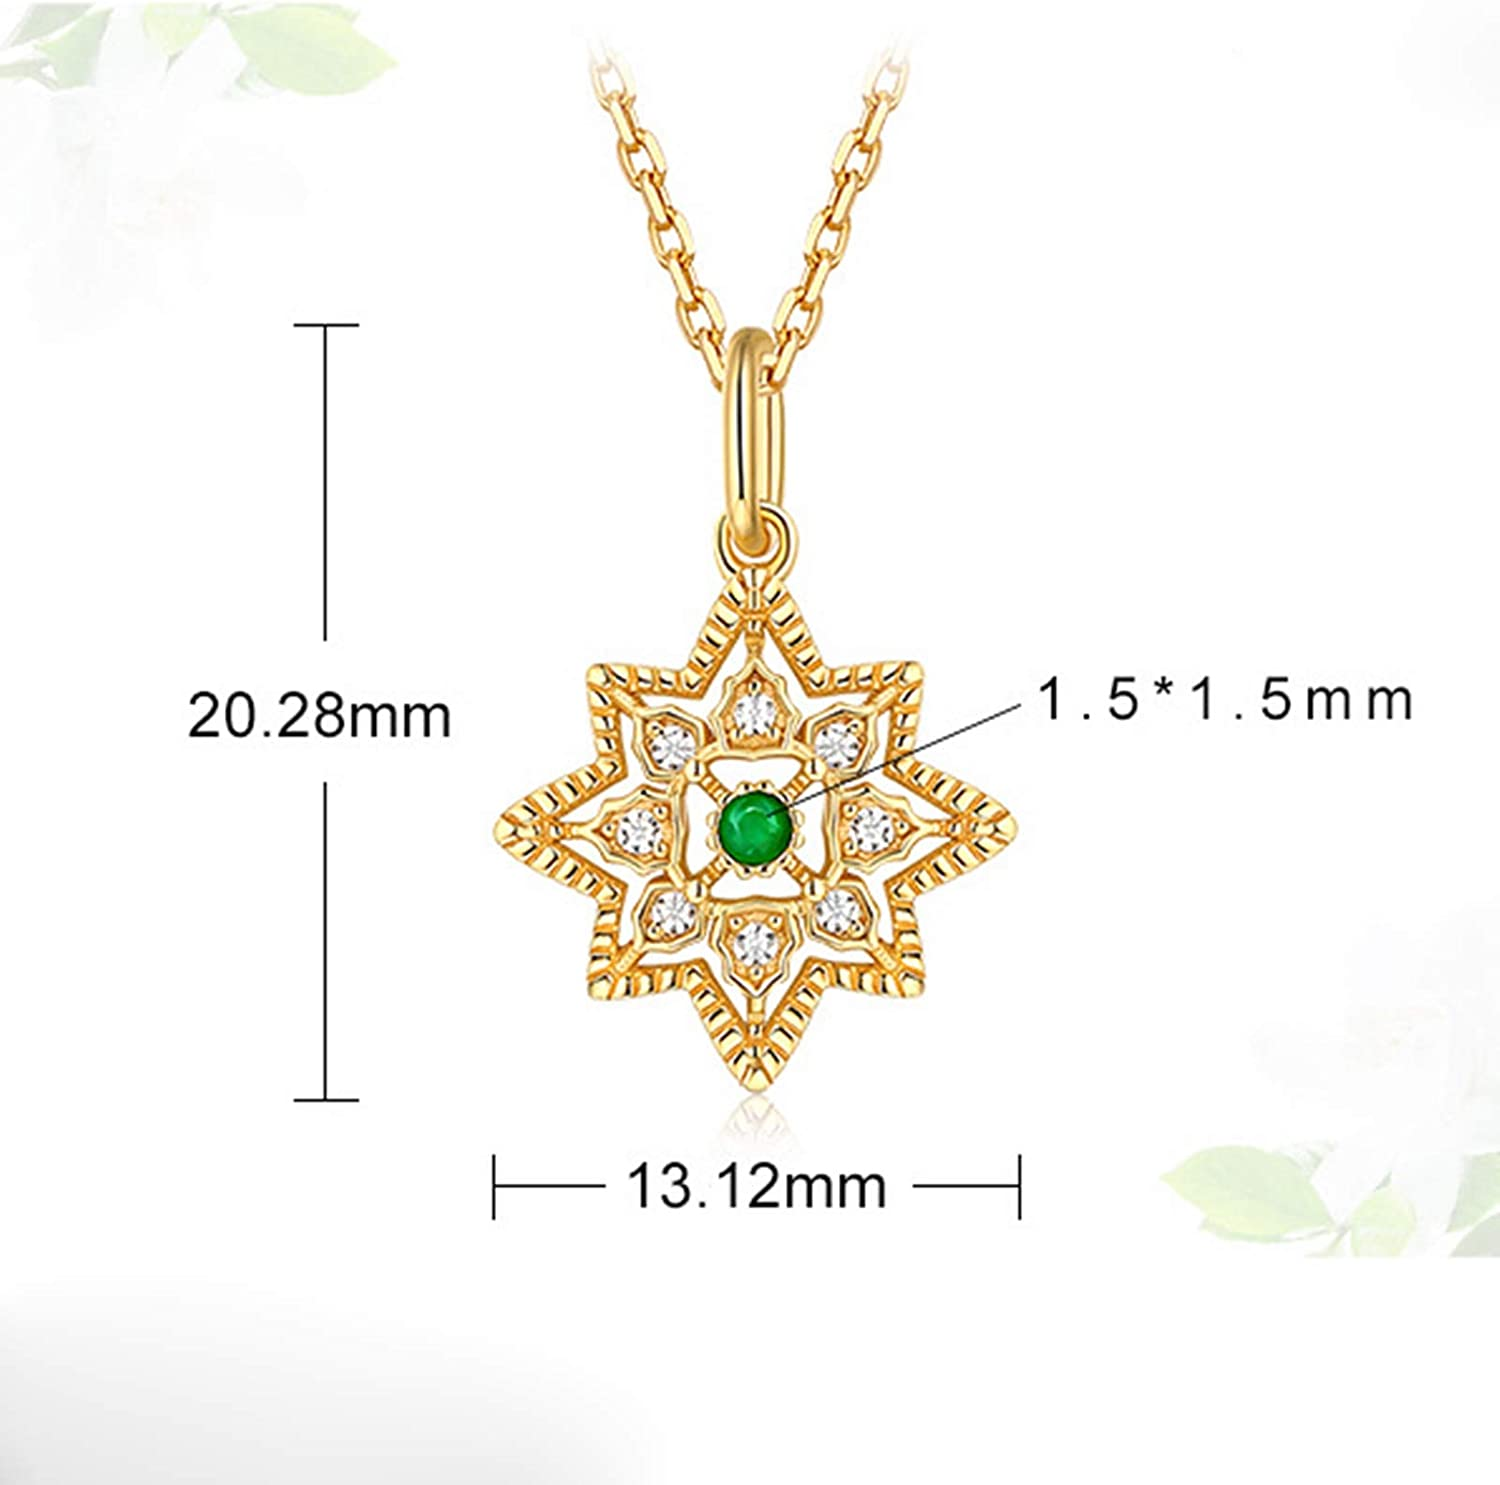 Epinki 925 Sterling Silver Necklace for Women Girls Gold Cubic Zirconia Vintage Flower Pendant Necklace